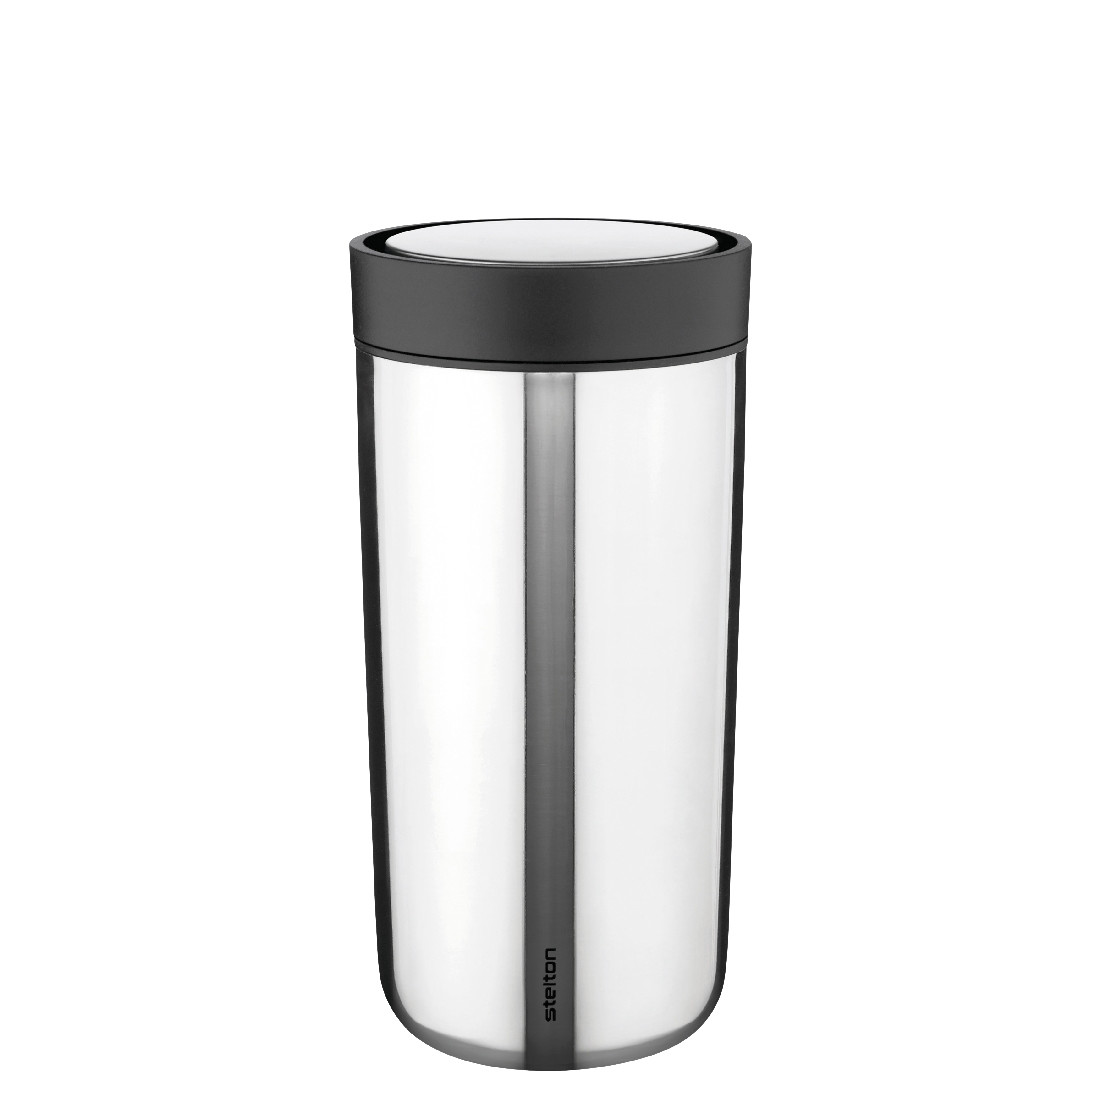 To Go Click Thermobecher Edelstahl 0,4l by stelton